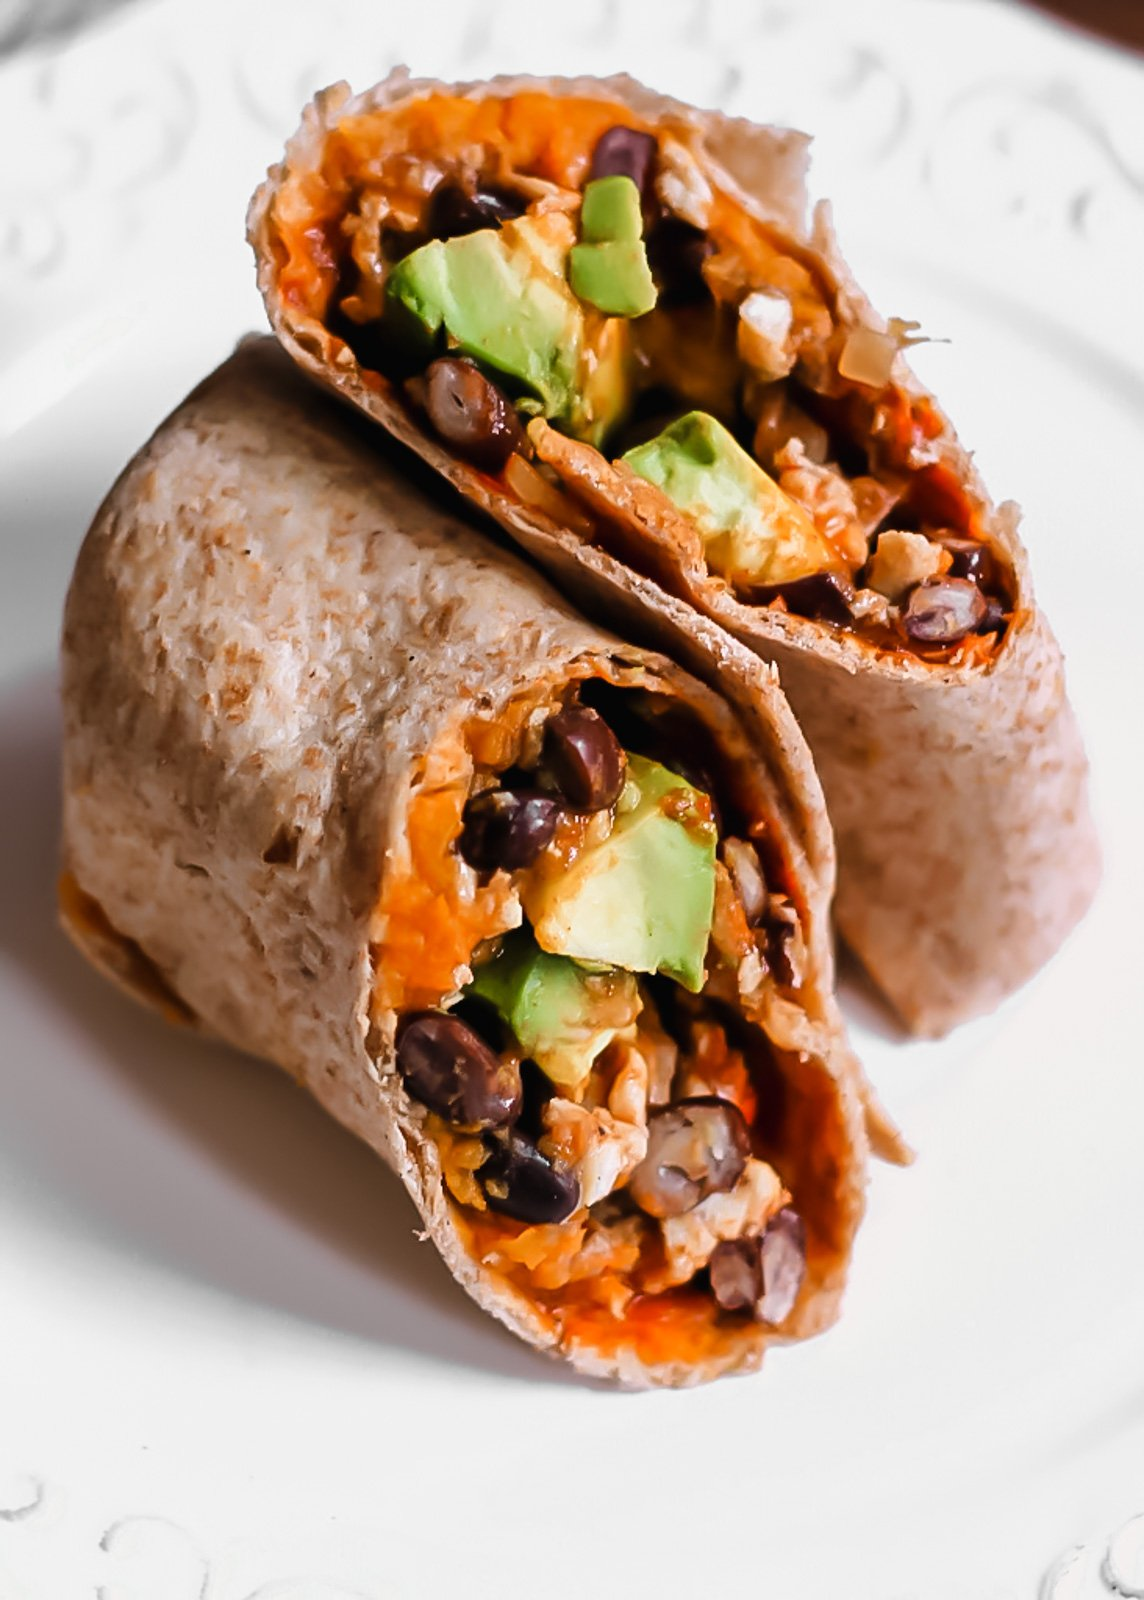 healthy breakfast burritos stuffed with sweet potatoes, black beans and avocado on a plate